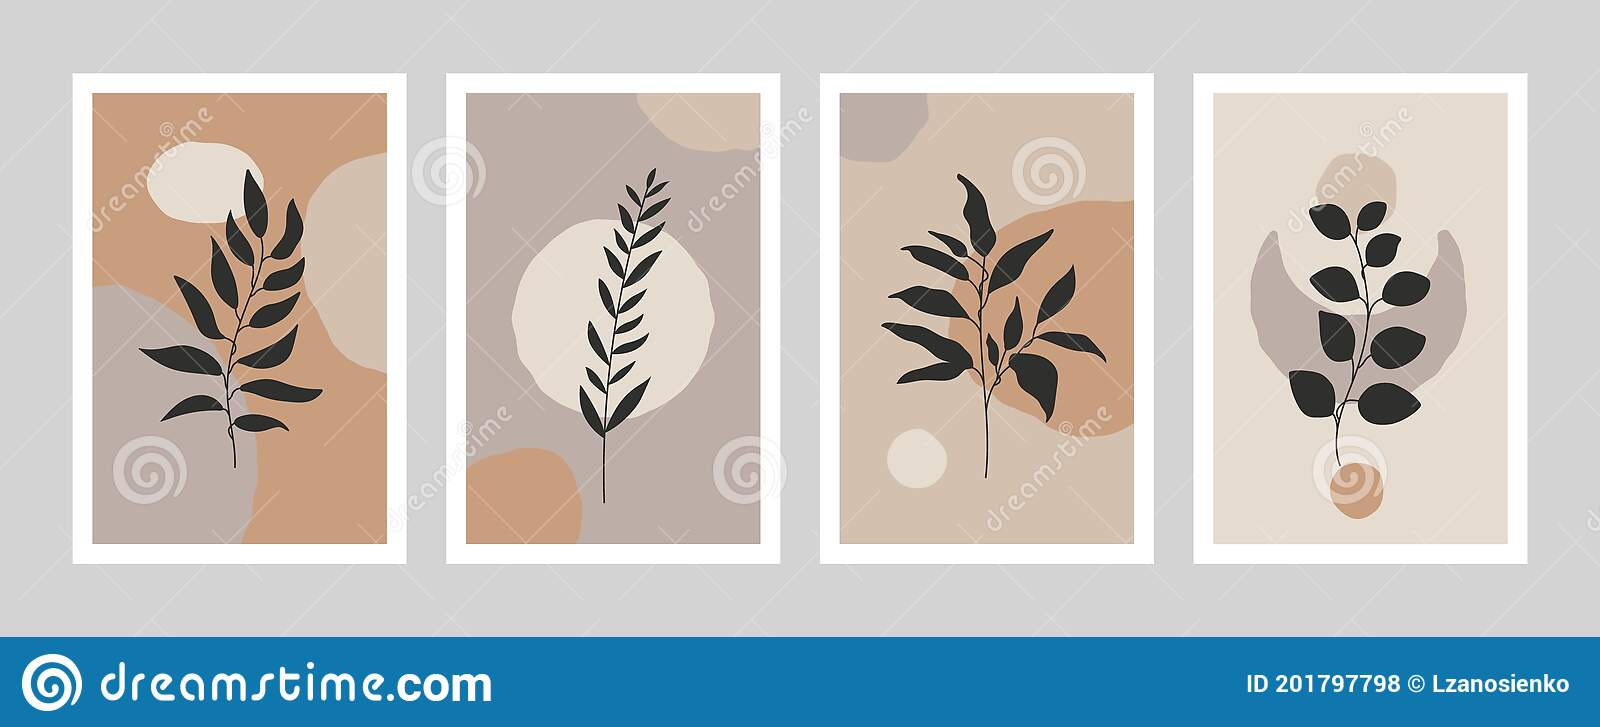 Abstract Plant Wall Art Stock Illustrations 14 235 Abstract Plant Wall Art Stock Illustrations Vectors Clipart Dreamstime